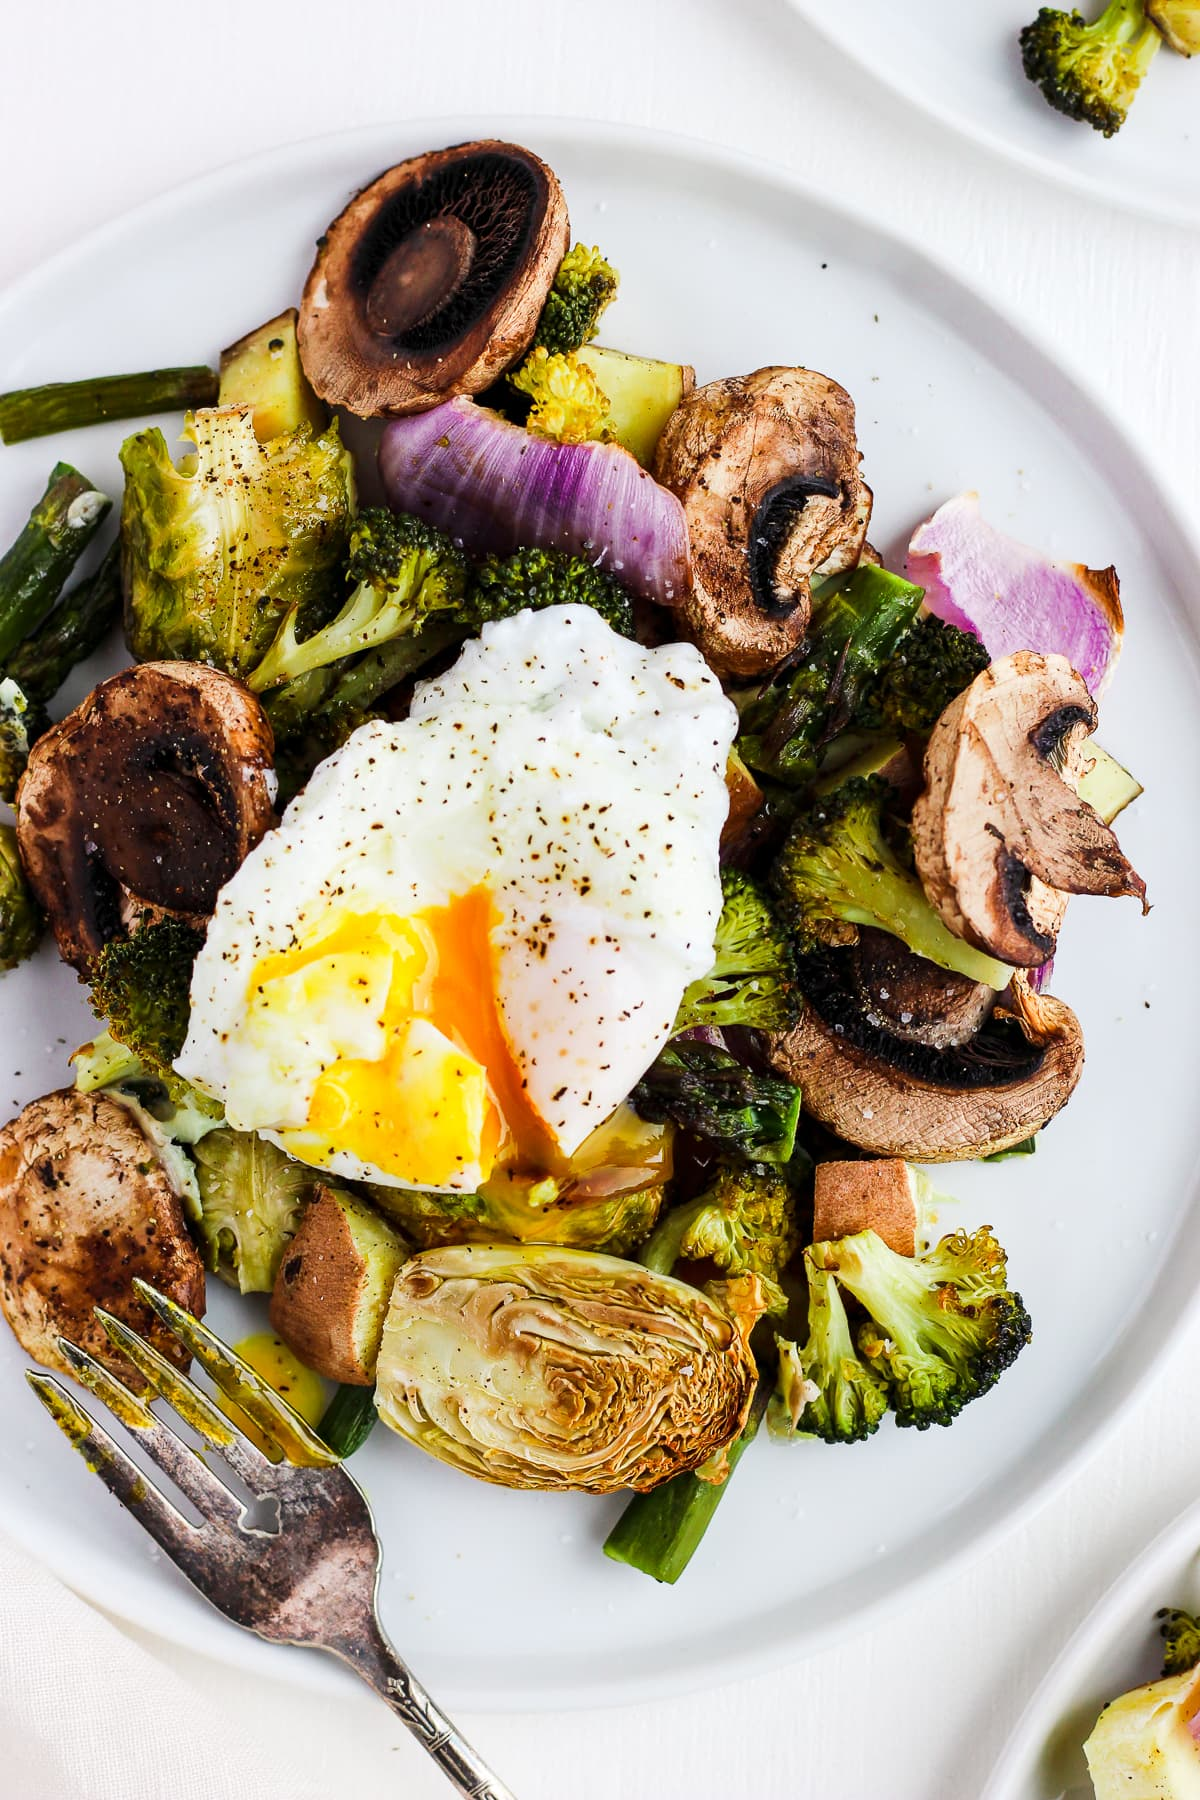 Weeknight Roasted Veggies with Poached Egg - the perfect go-to meal for those busy weeknights! #healthyeating #whole30 #paleo